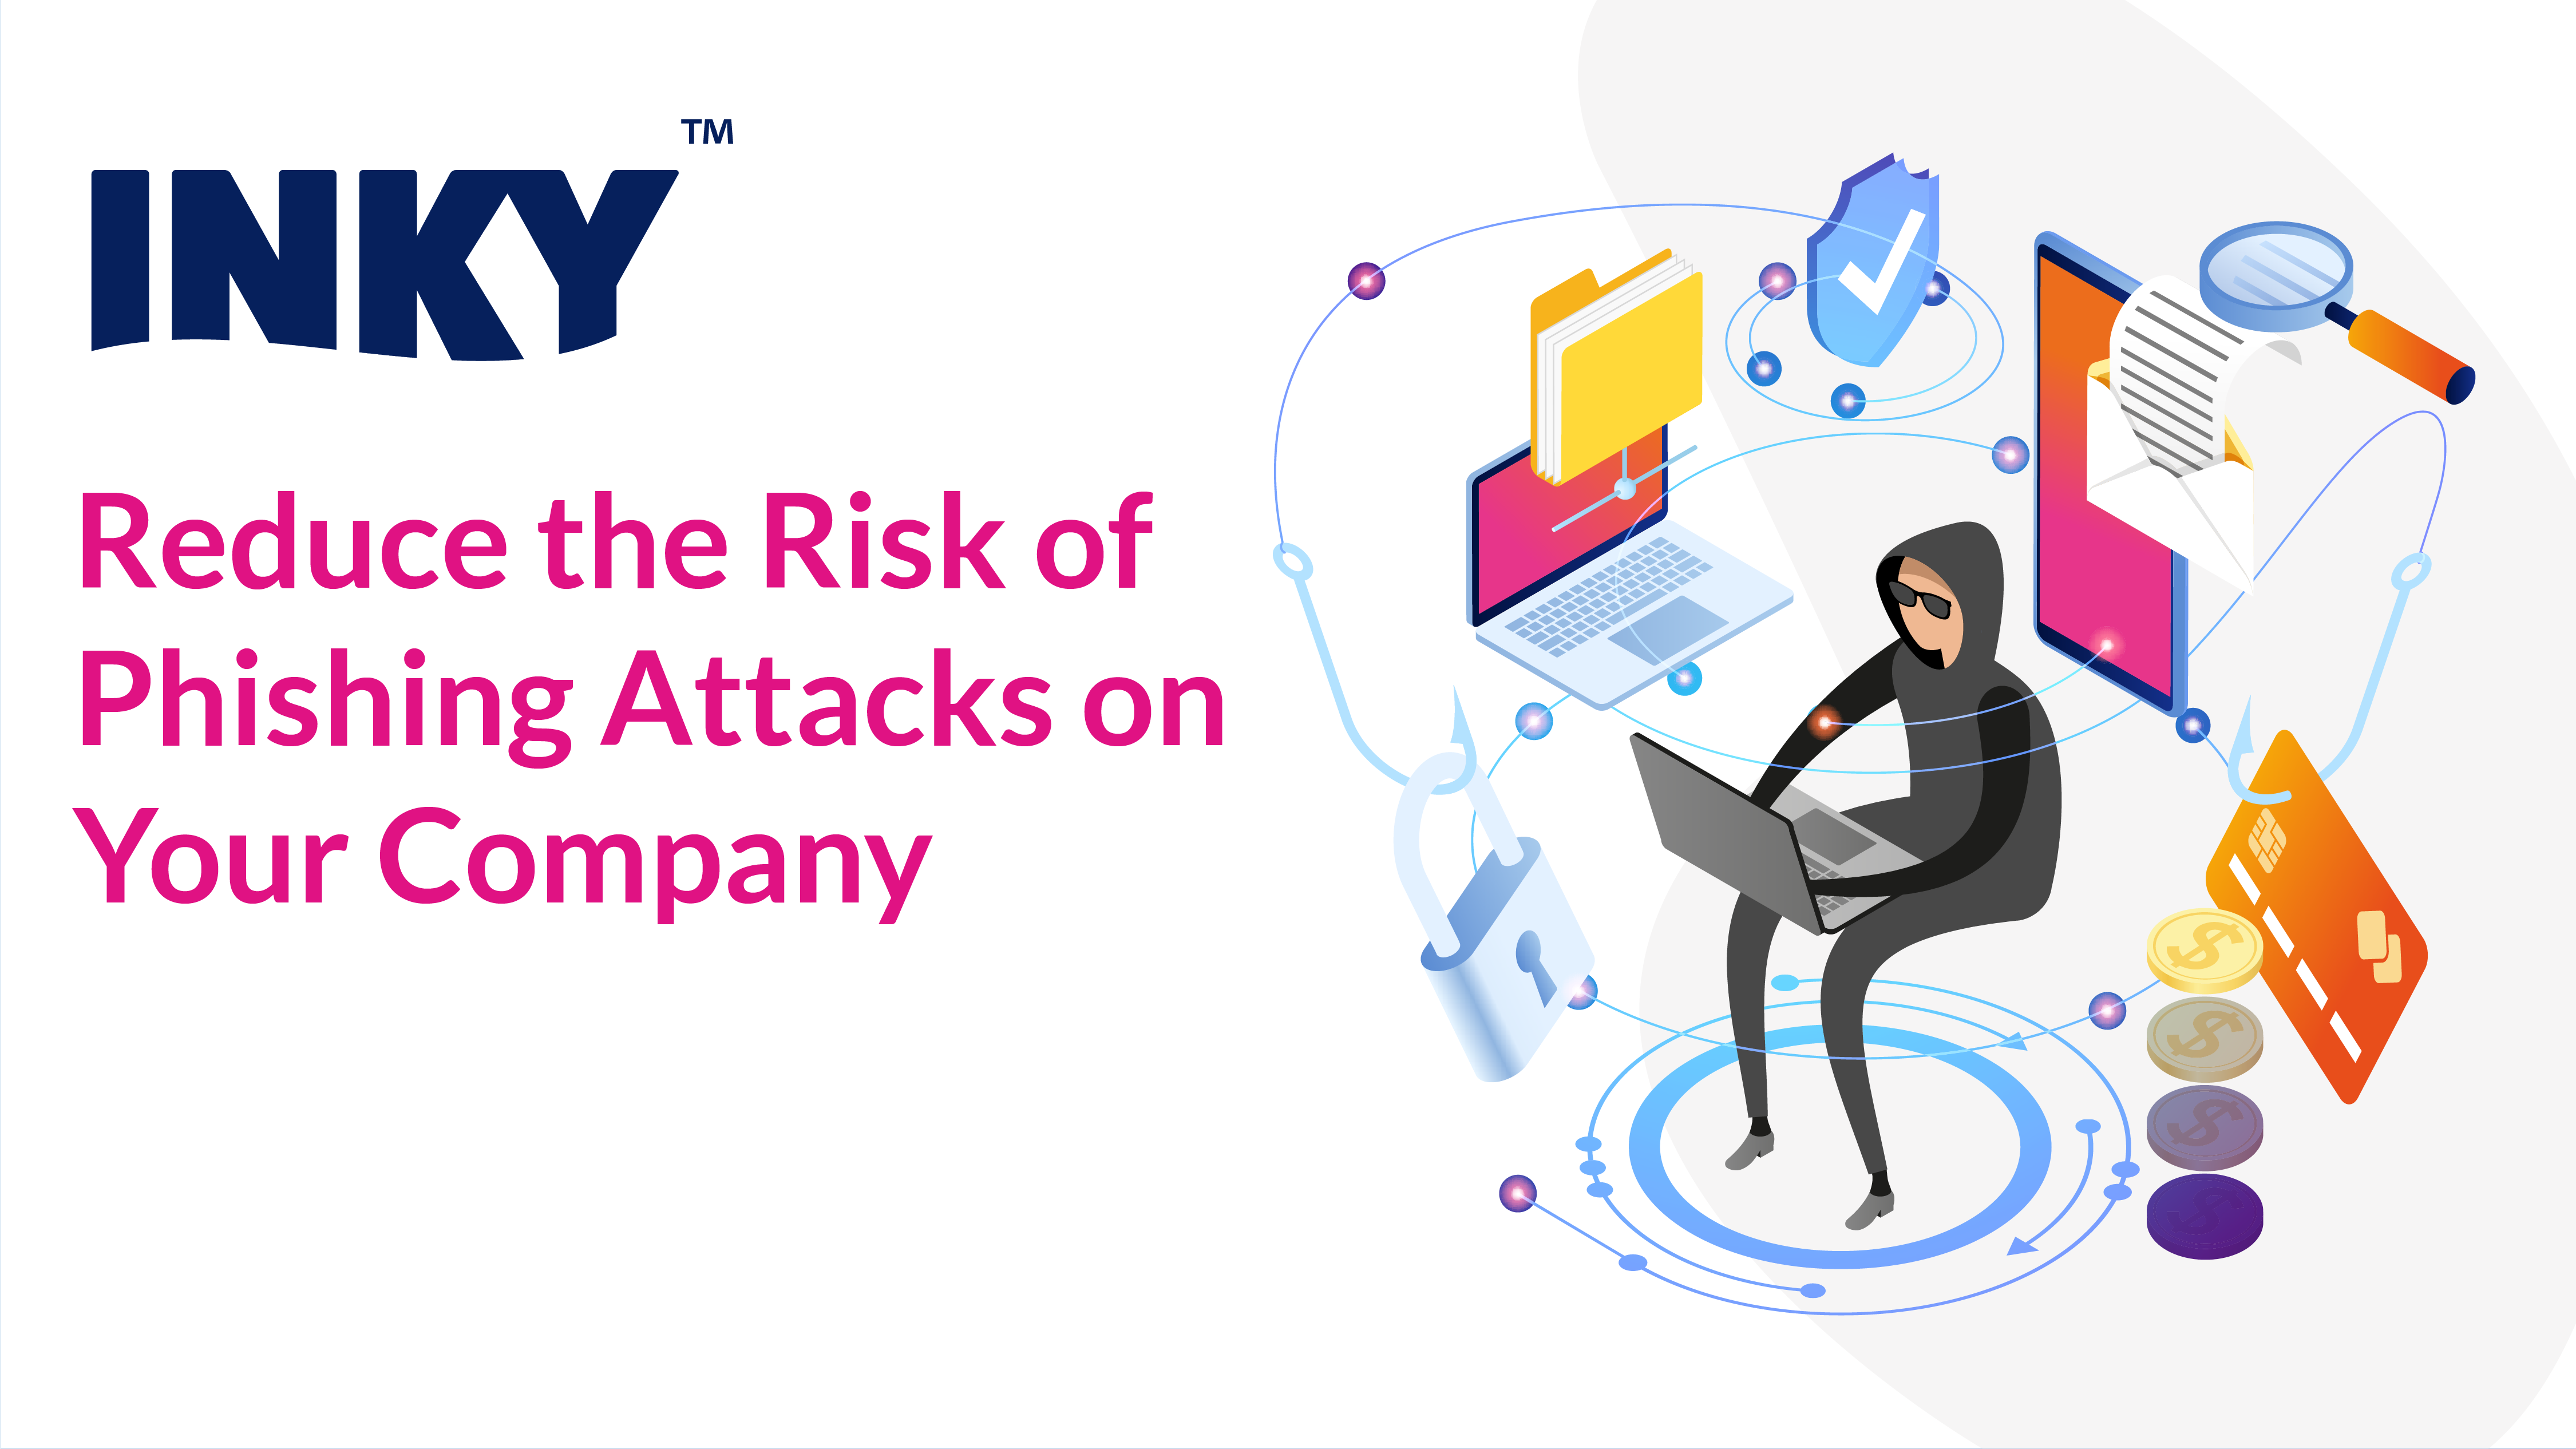 Reduce the Risk of Phishing Attacks on Your Company